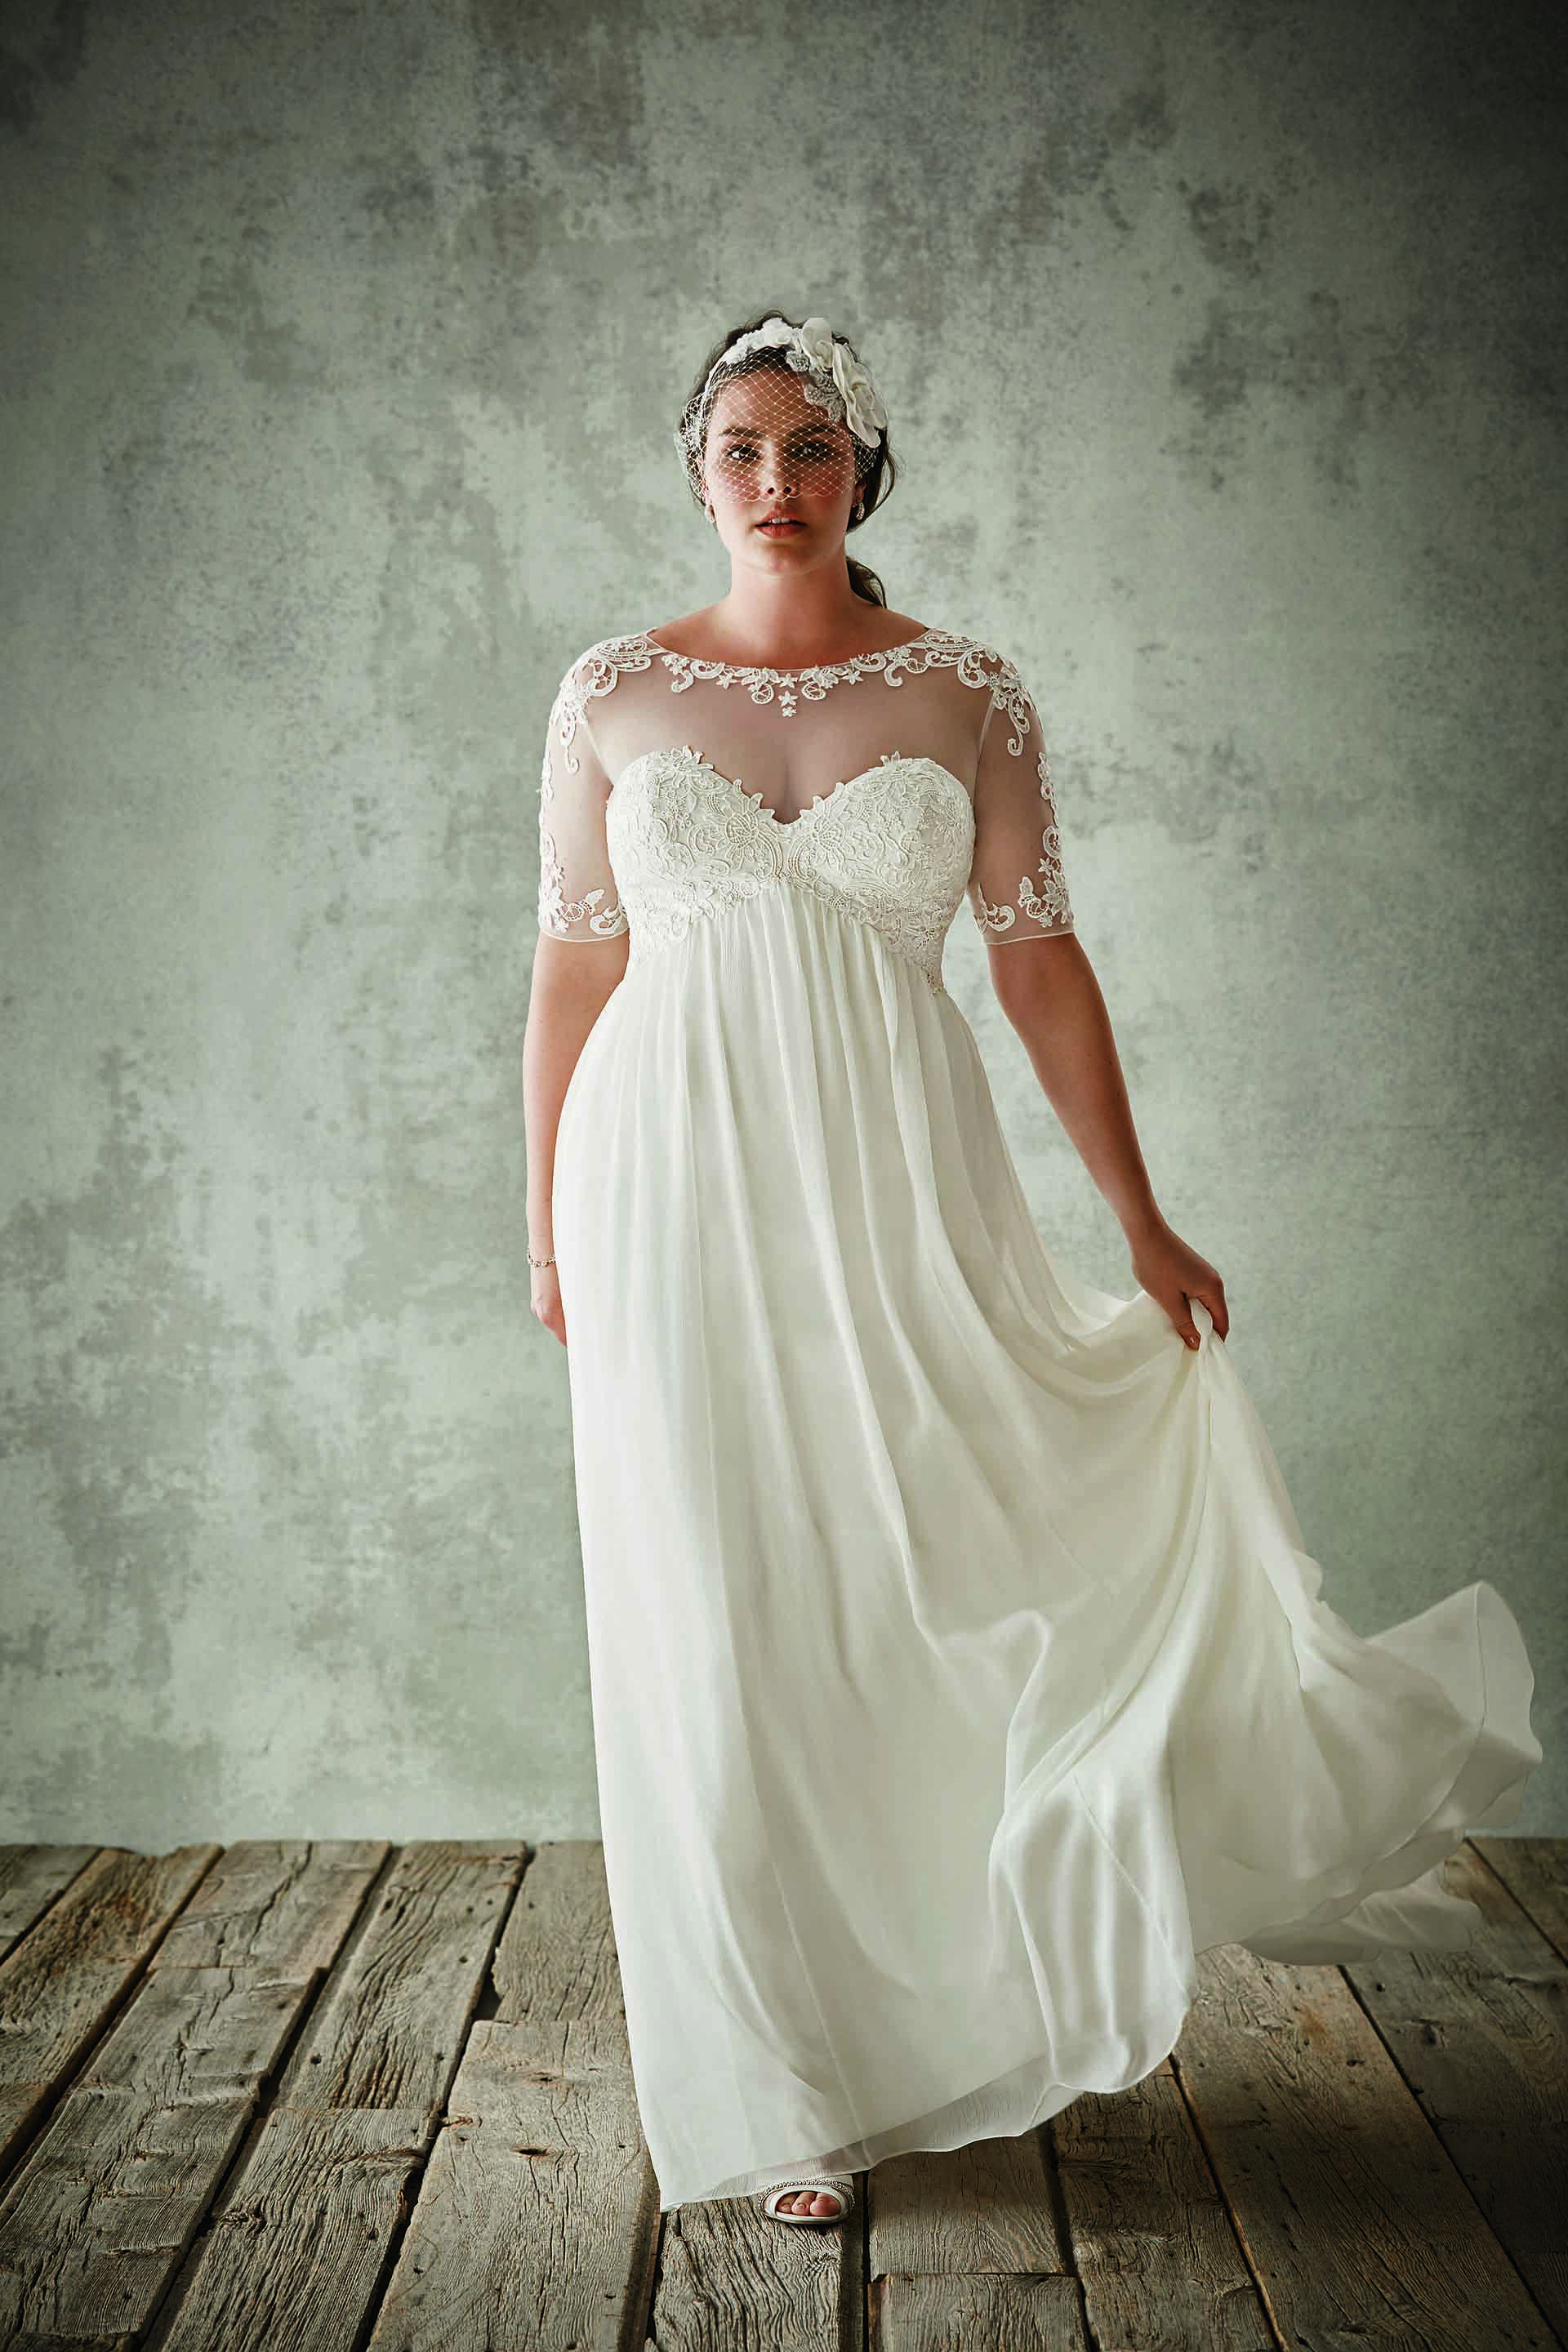 Discount fashion plus size wedding dresses with half sleeves sheer discount fashion plus size wedding dresses with half sleeves sheer jewel neck a line lace appliqued bridal gowns chiffon empire waist wedding dress ombrellifo Image collections